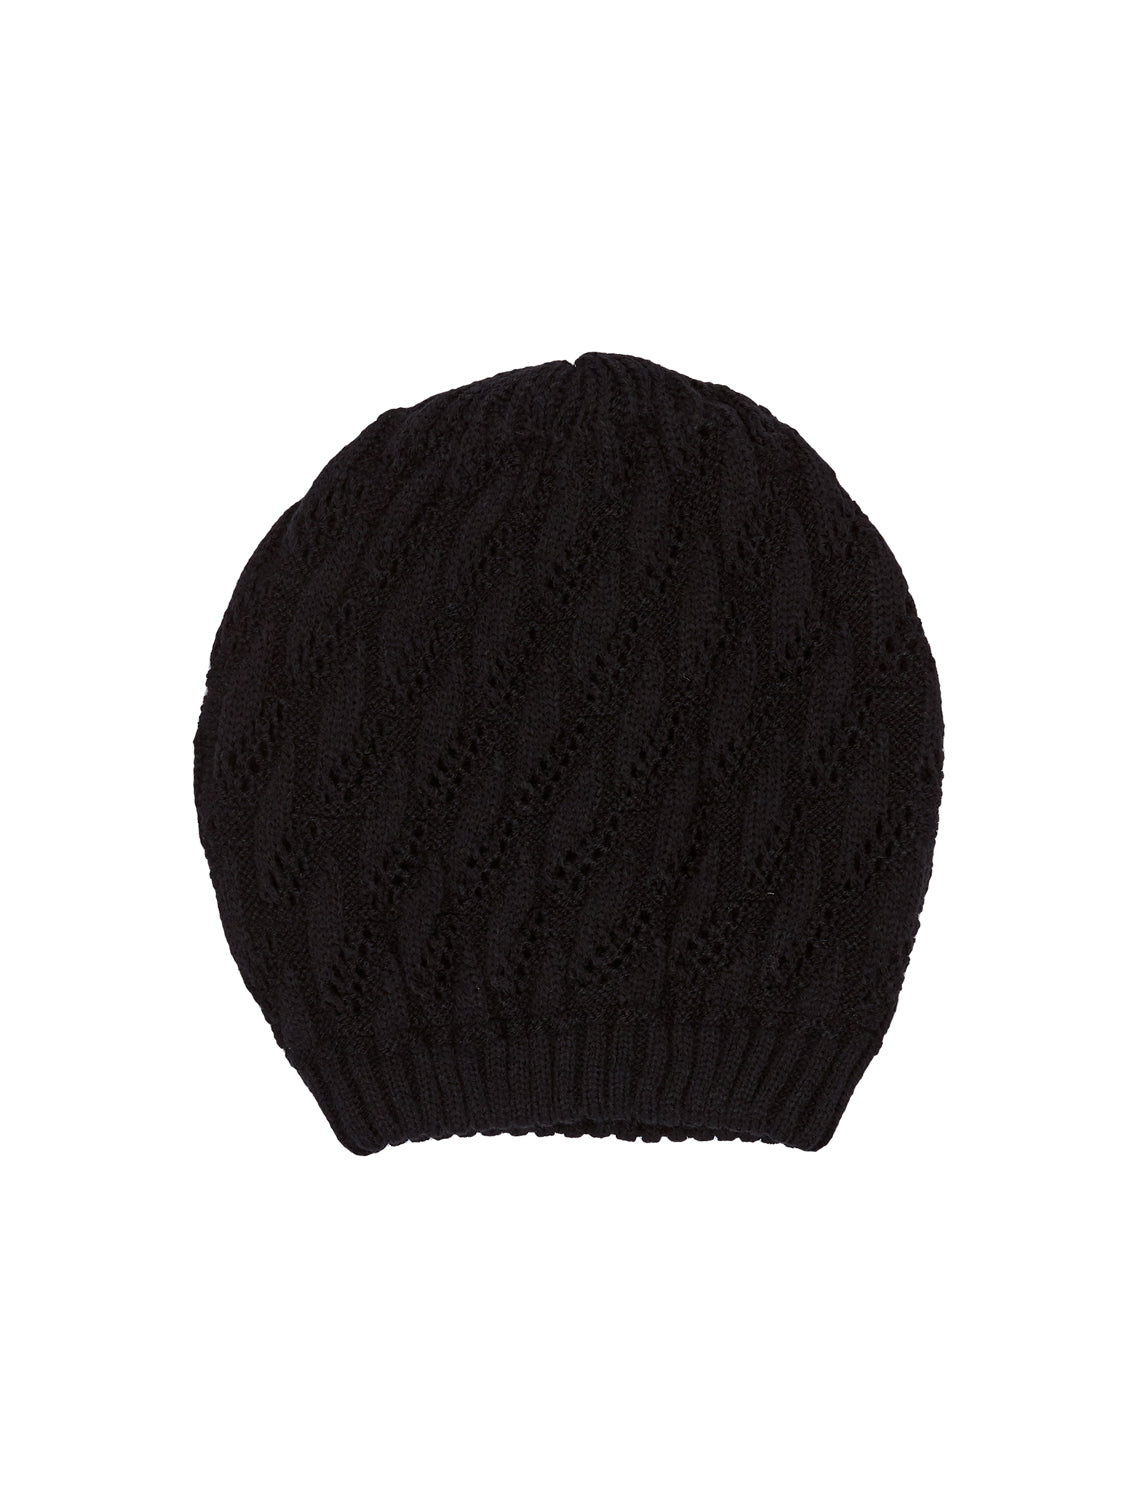 Knit Bean Hat